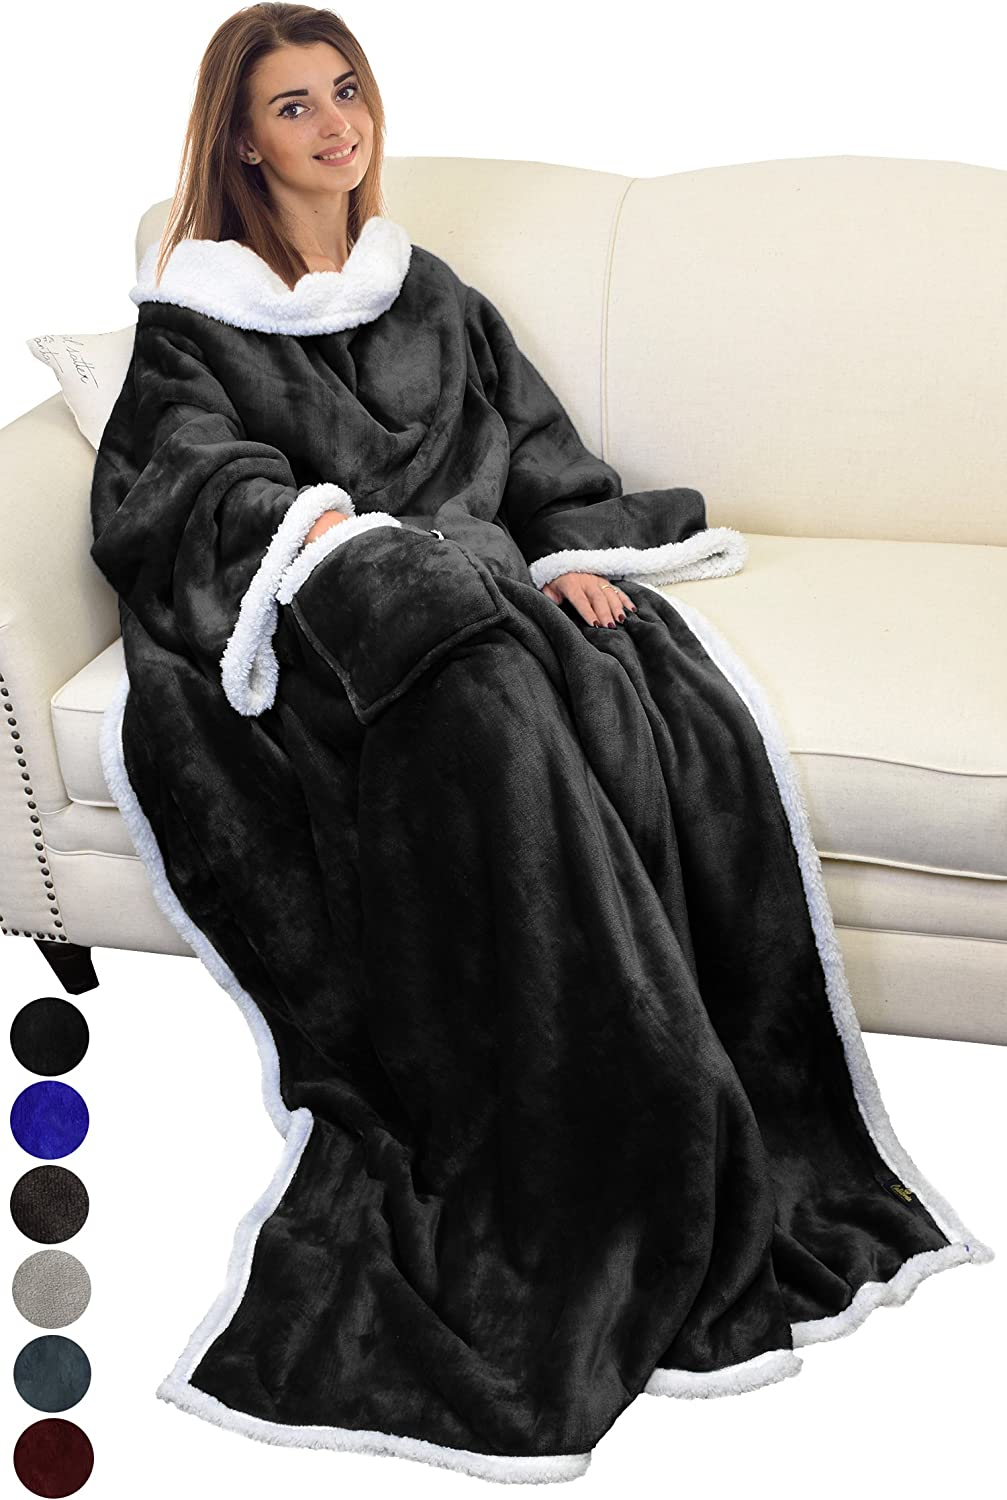 Catalonia Sherpa Wearable Blanket with Sleeves Arms,Super Soft Warm Comfy Large Fleece Plush Sleeved TV Throws Wrap Robe Blanket for Adult Women and Men Black